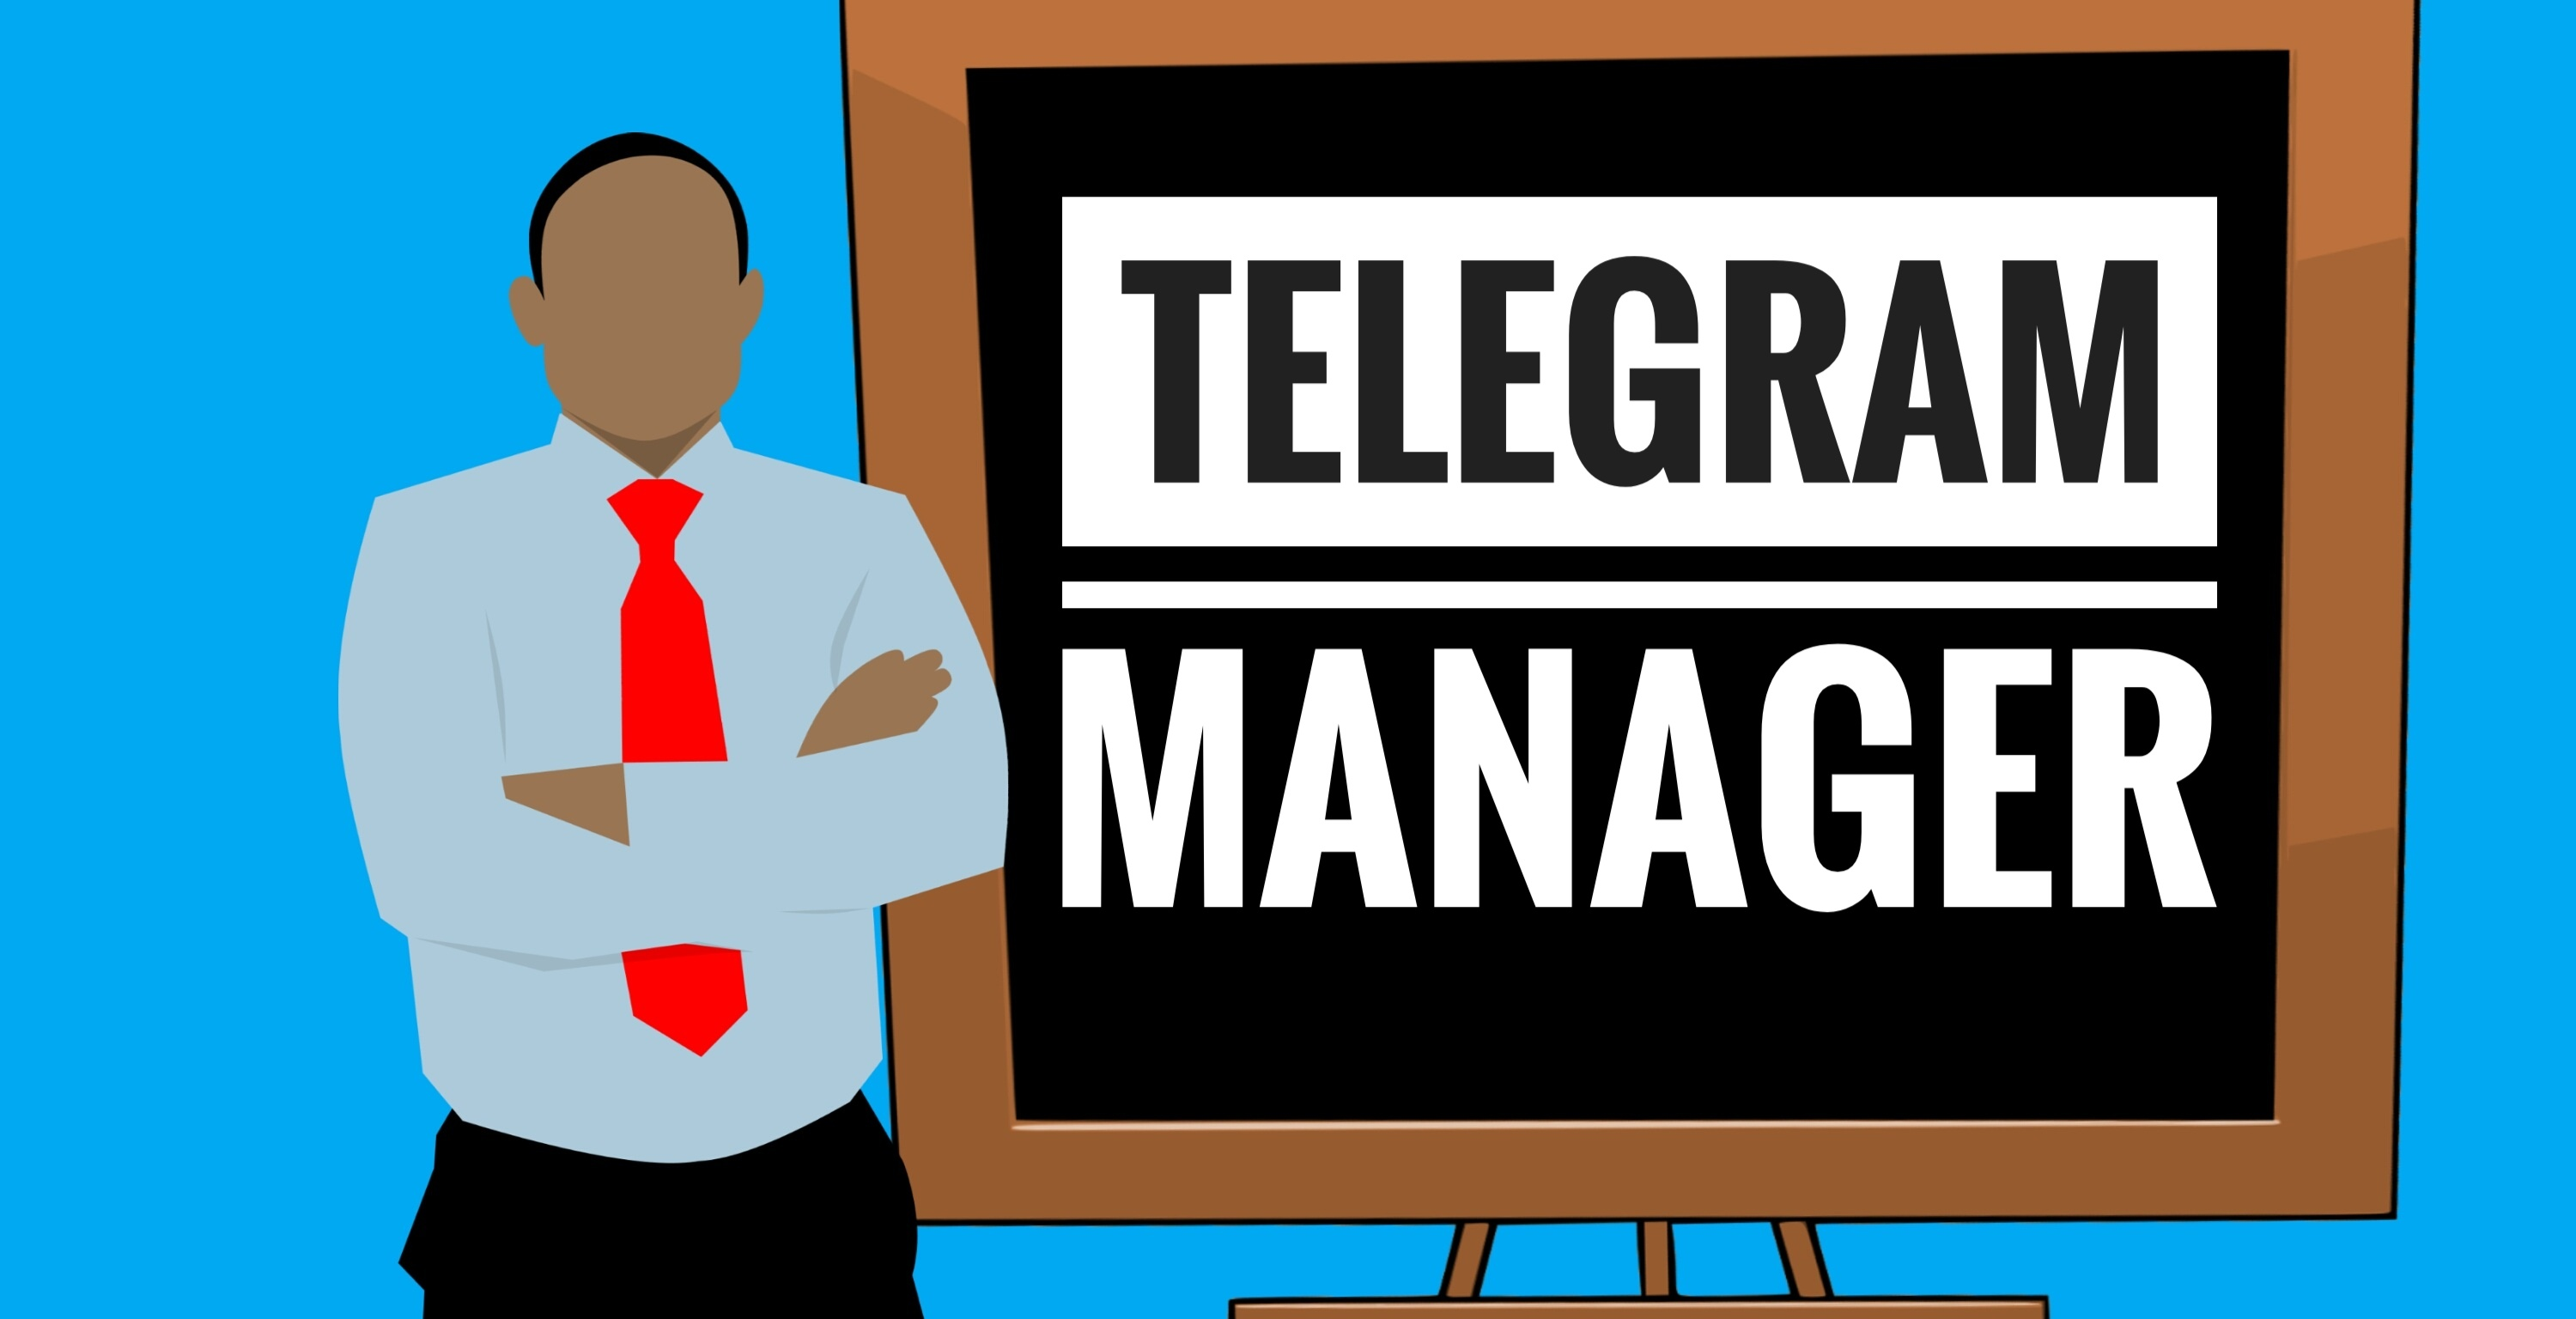 Be your telegram account manager